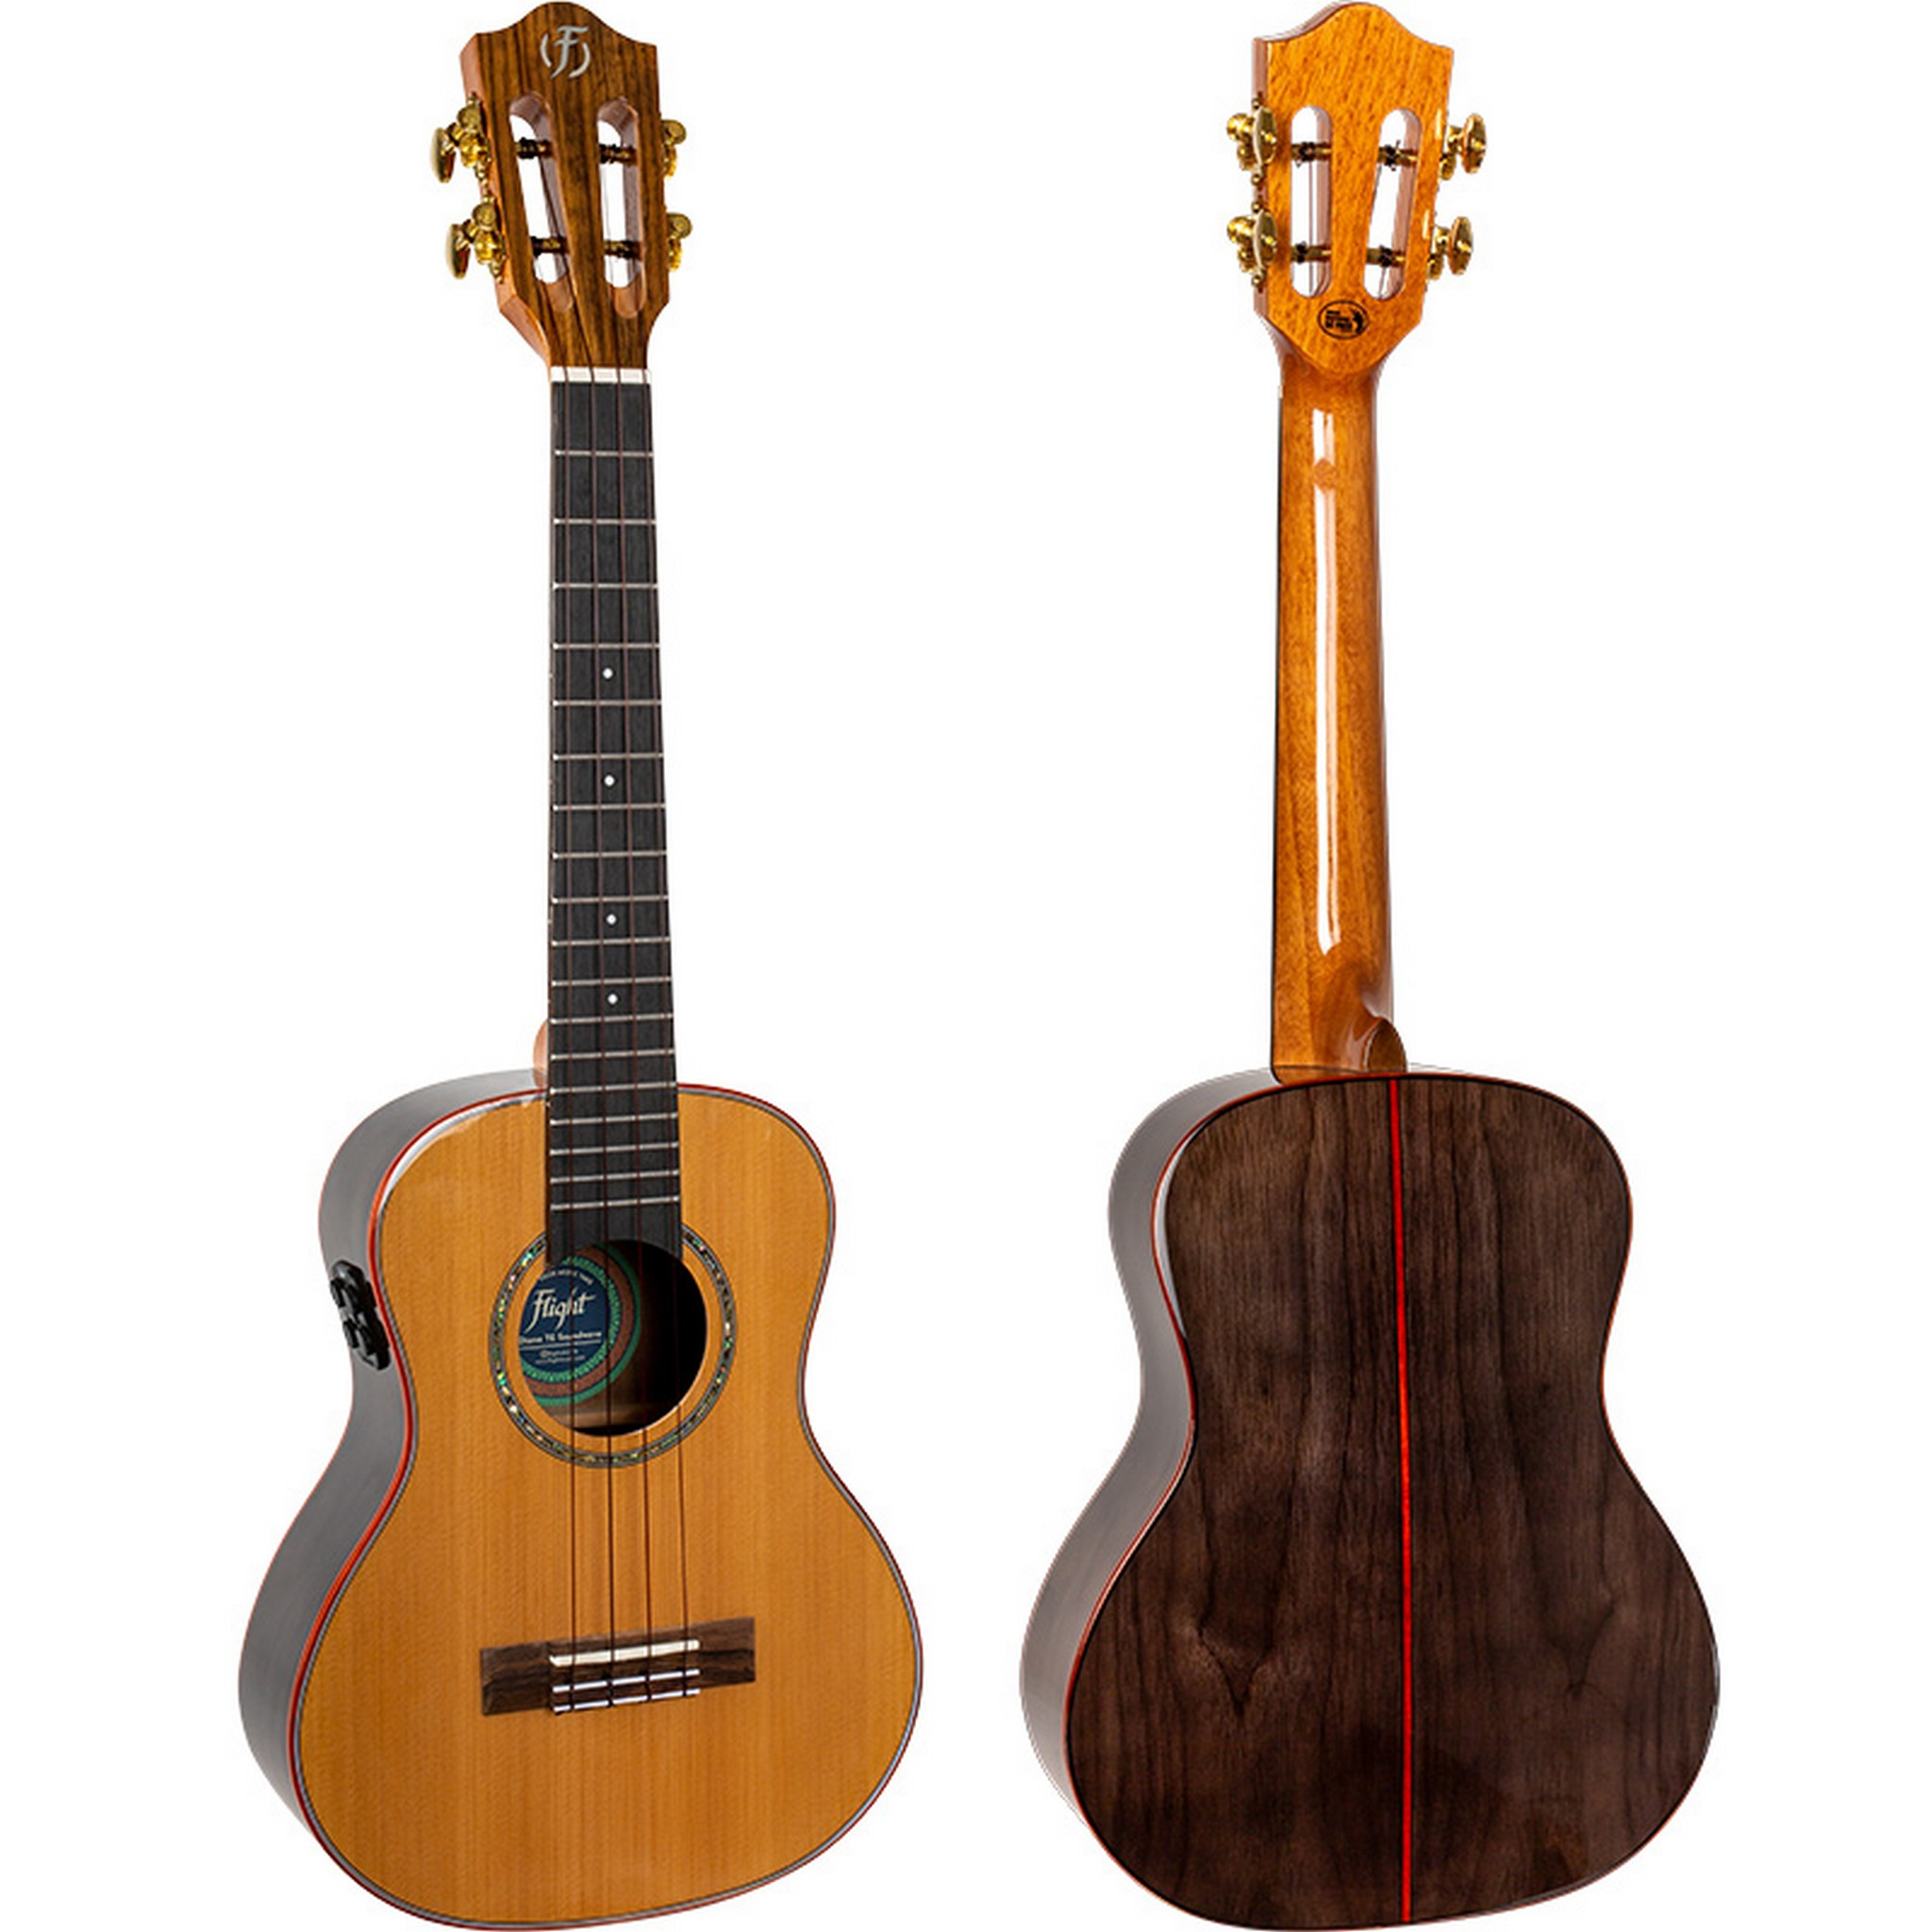 Flight Tenor Ukulele Diana Soundwave